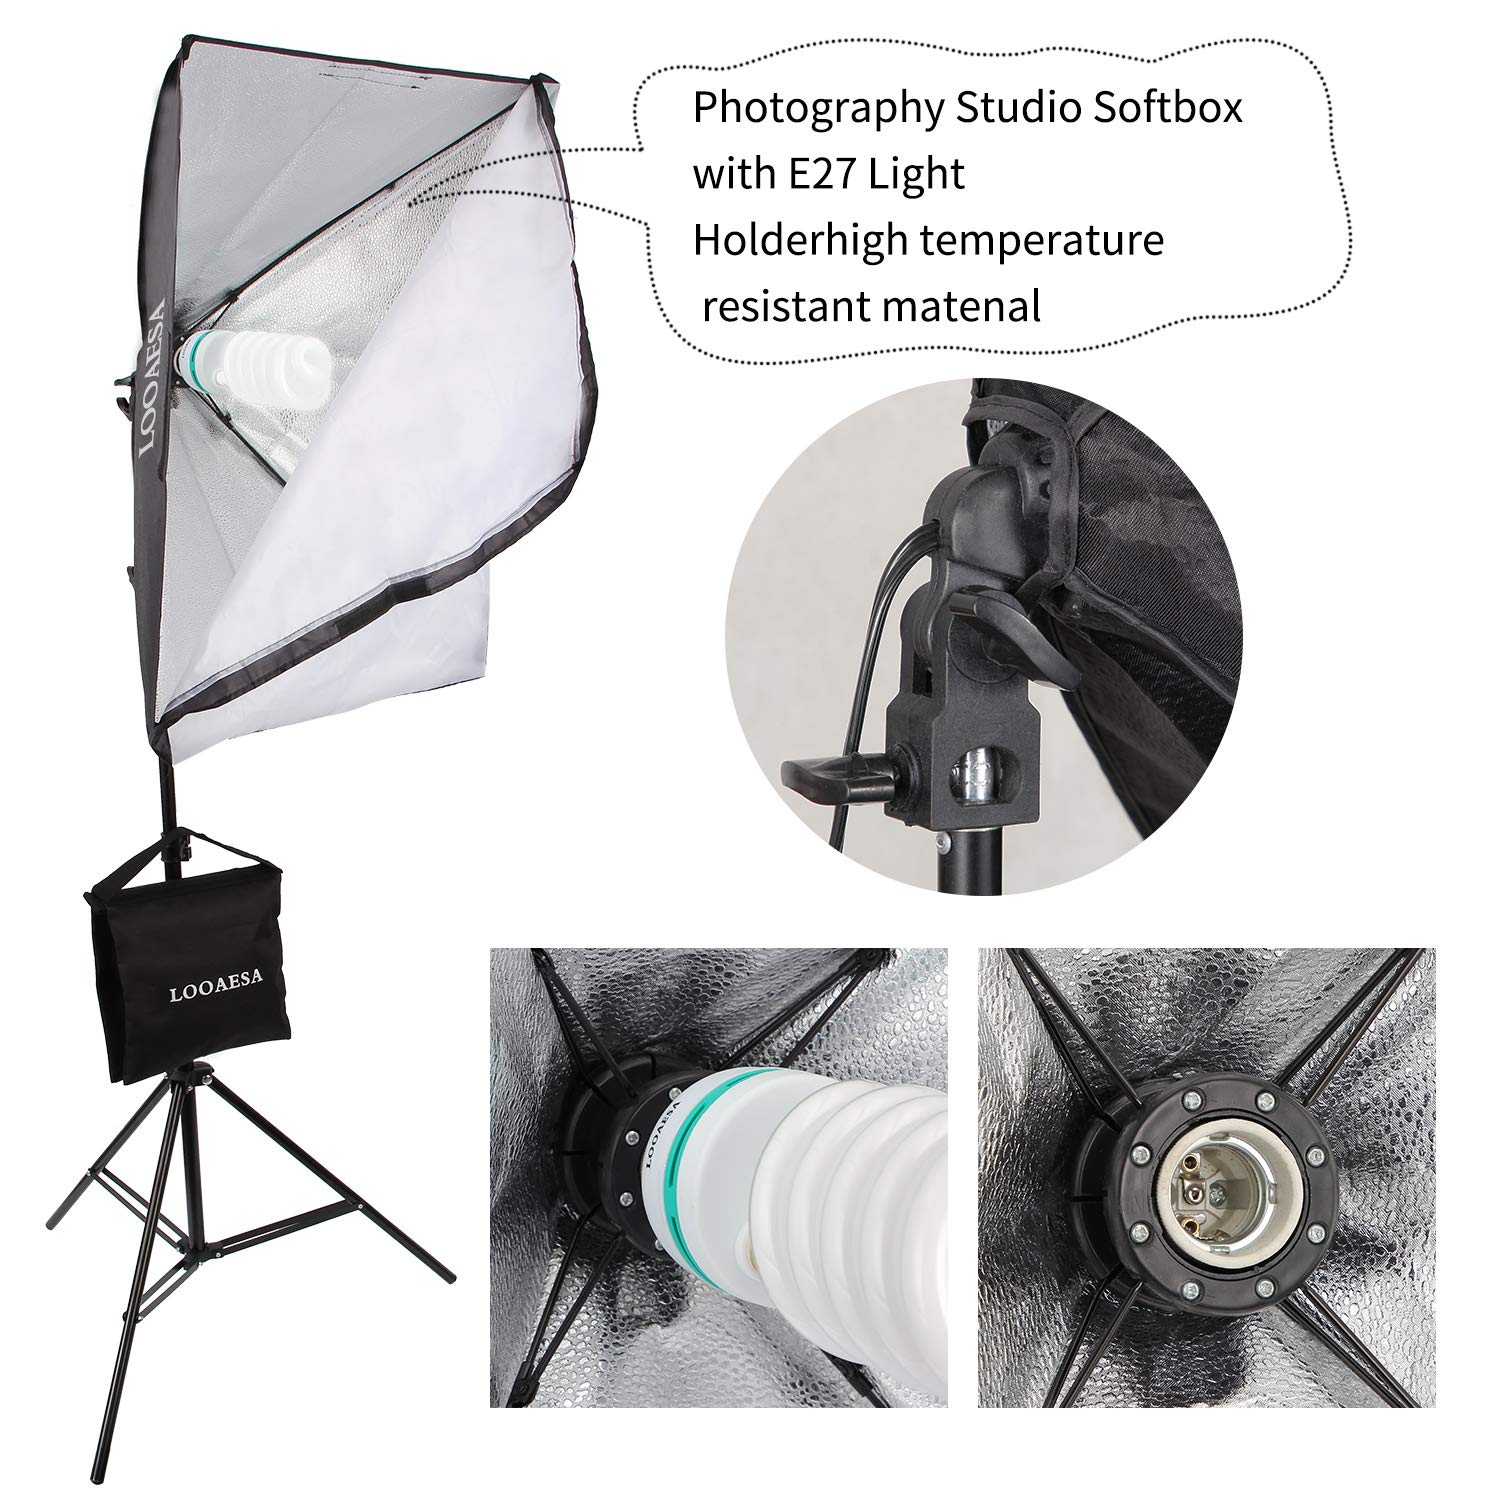 1350W Photography Lighting Softbox Lighting Kit Continuous Photo Video Lighting System with Sandbag and 5500K Bulb 20''X28'' Professional Studio Lights Equipment for Youtube Filming Portraits by LOOAESA by LOOAESA (Image #8)